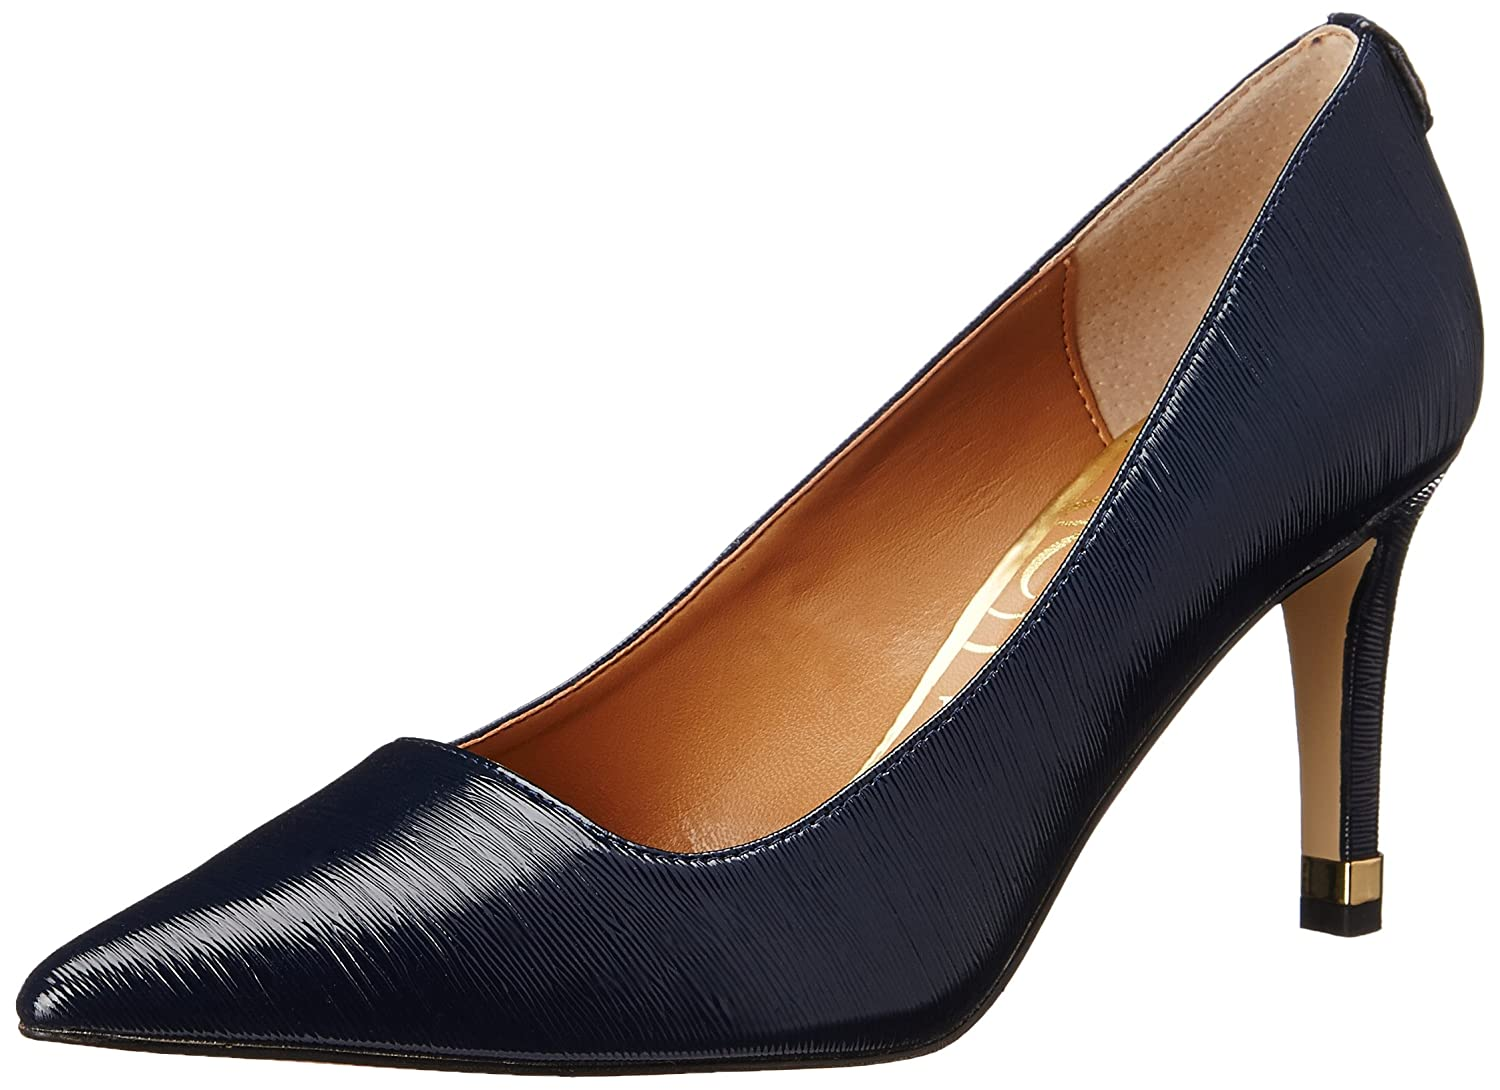 J.Renee Women's Sascha Dress Pump B010AAKFXQ 10 W US|Navy